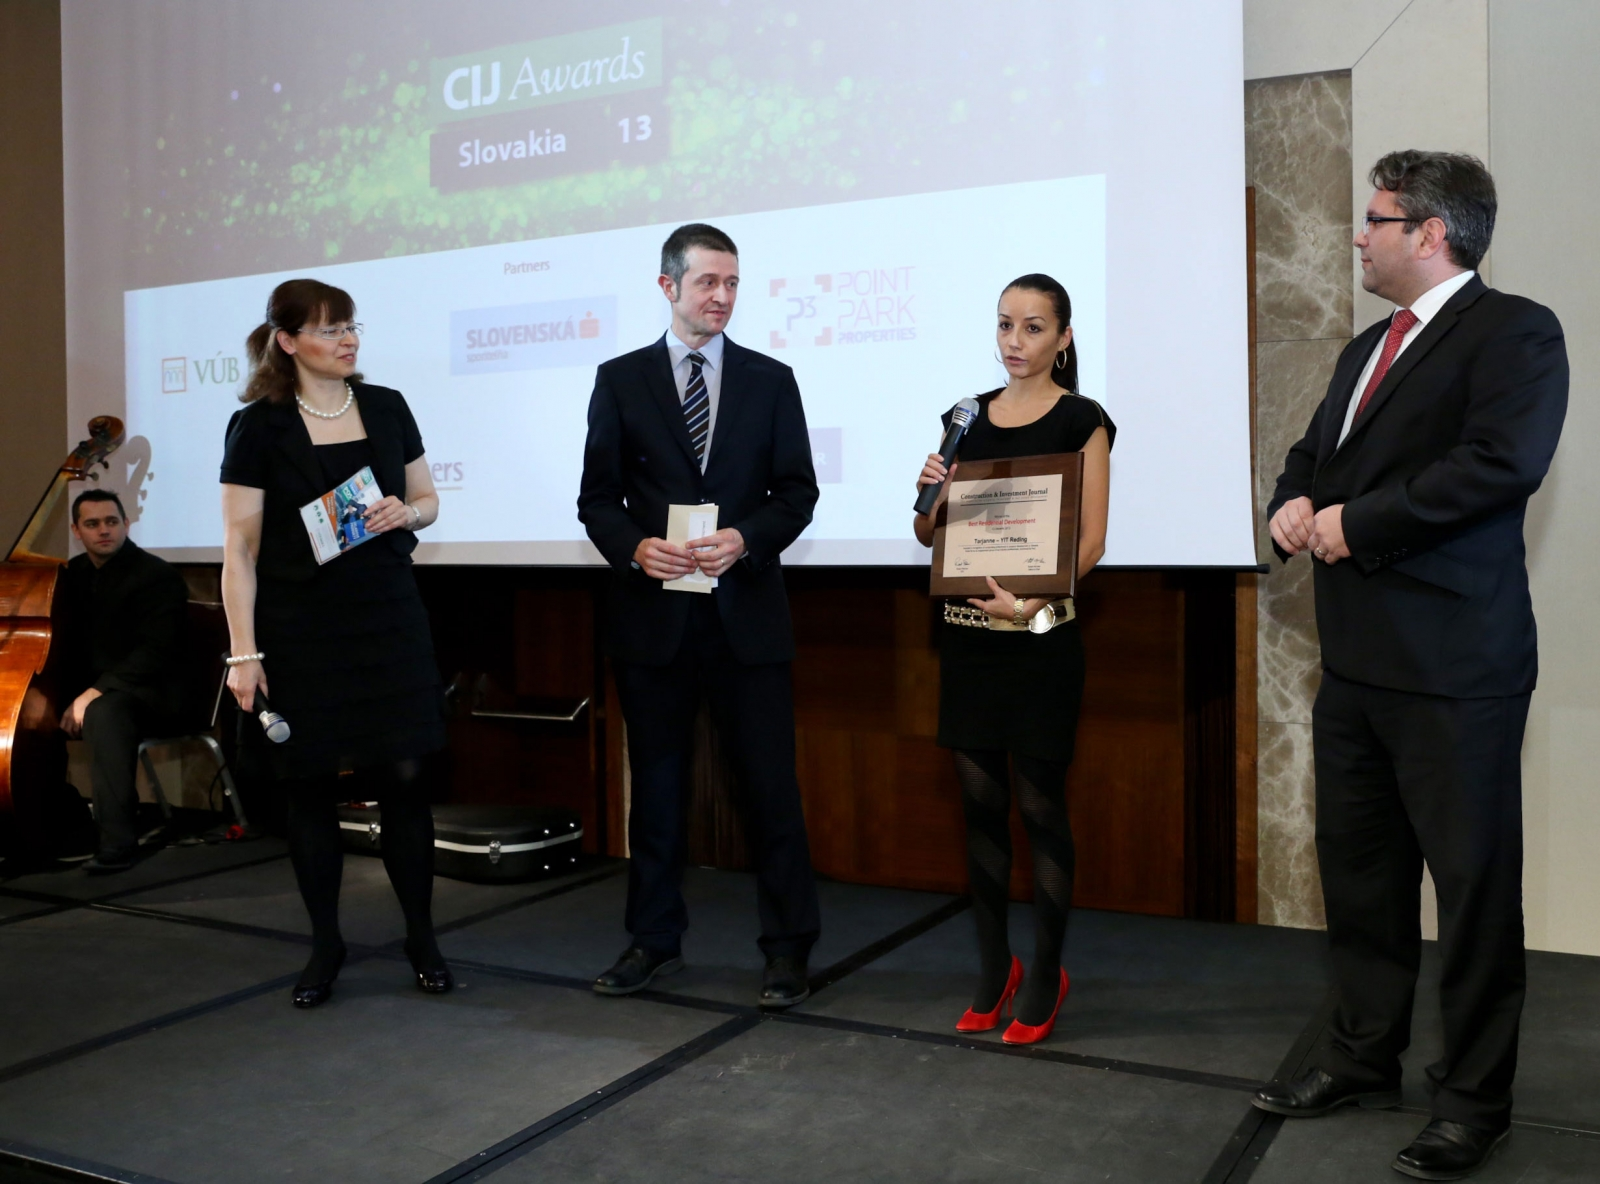 CIJ Awards 2013